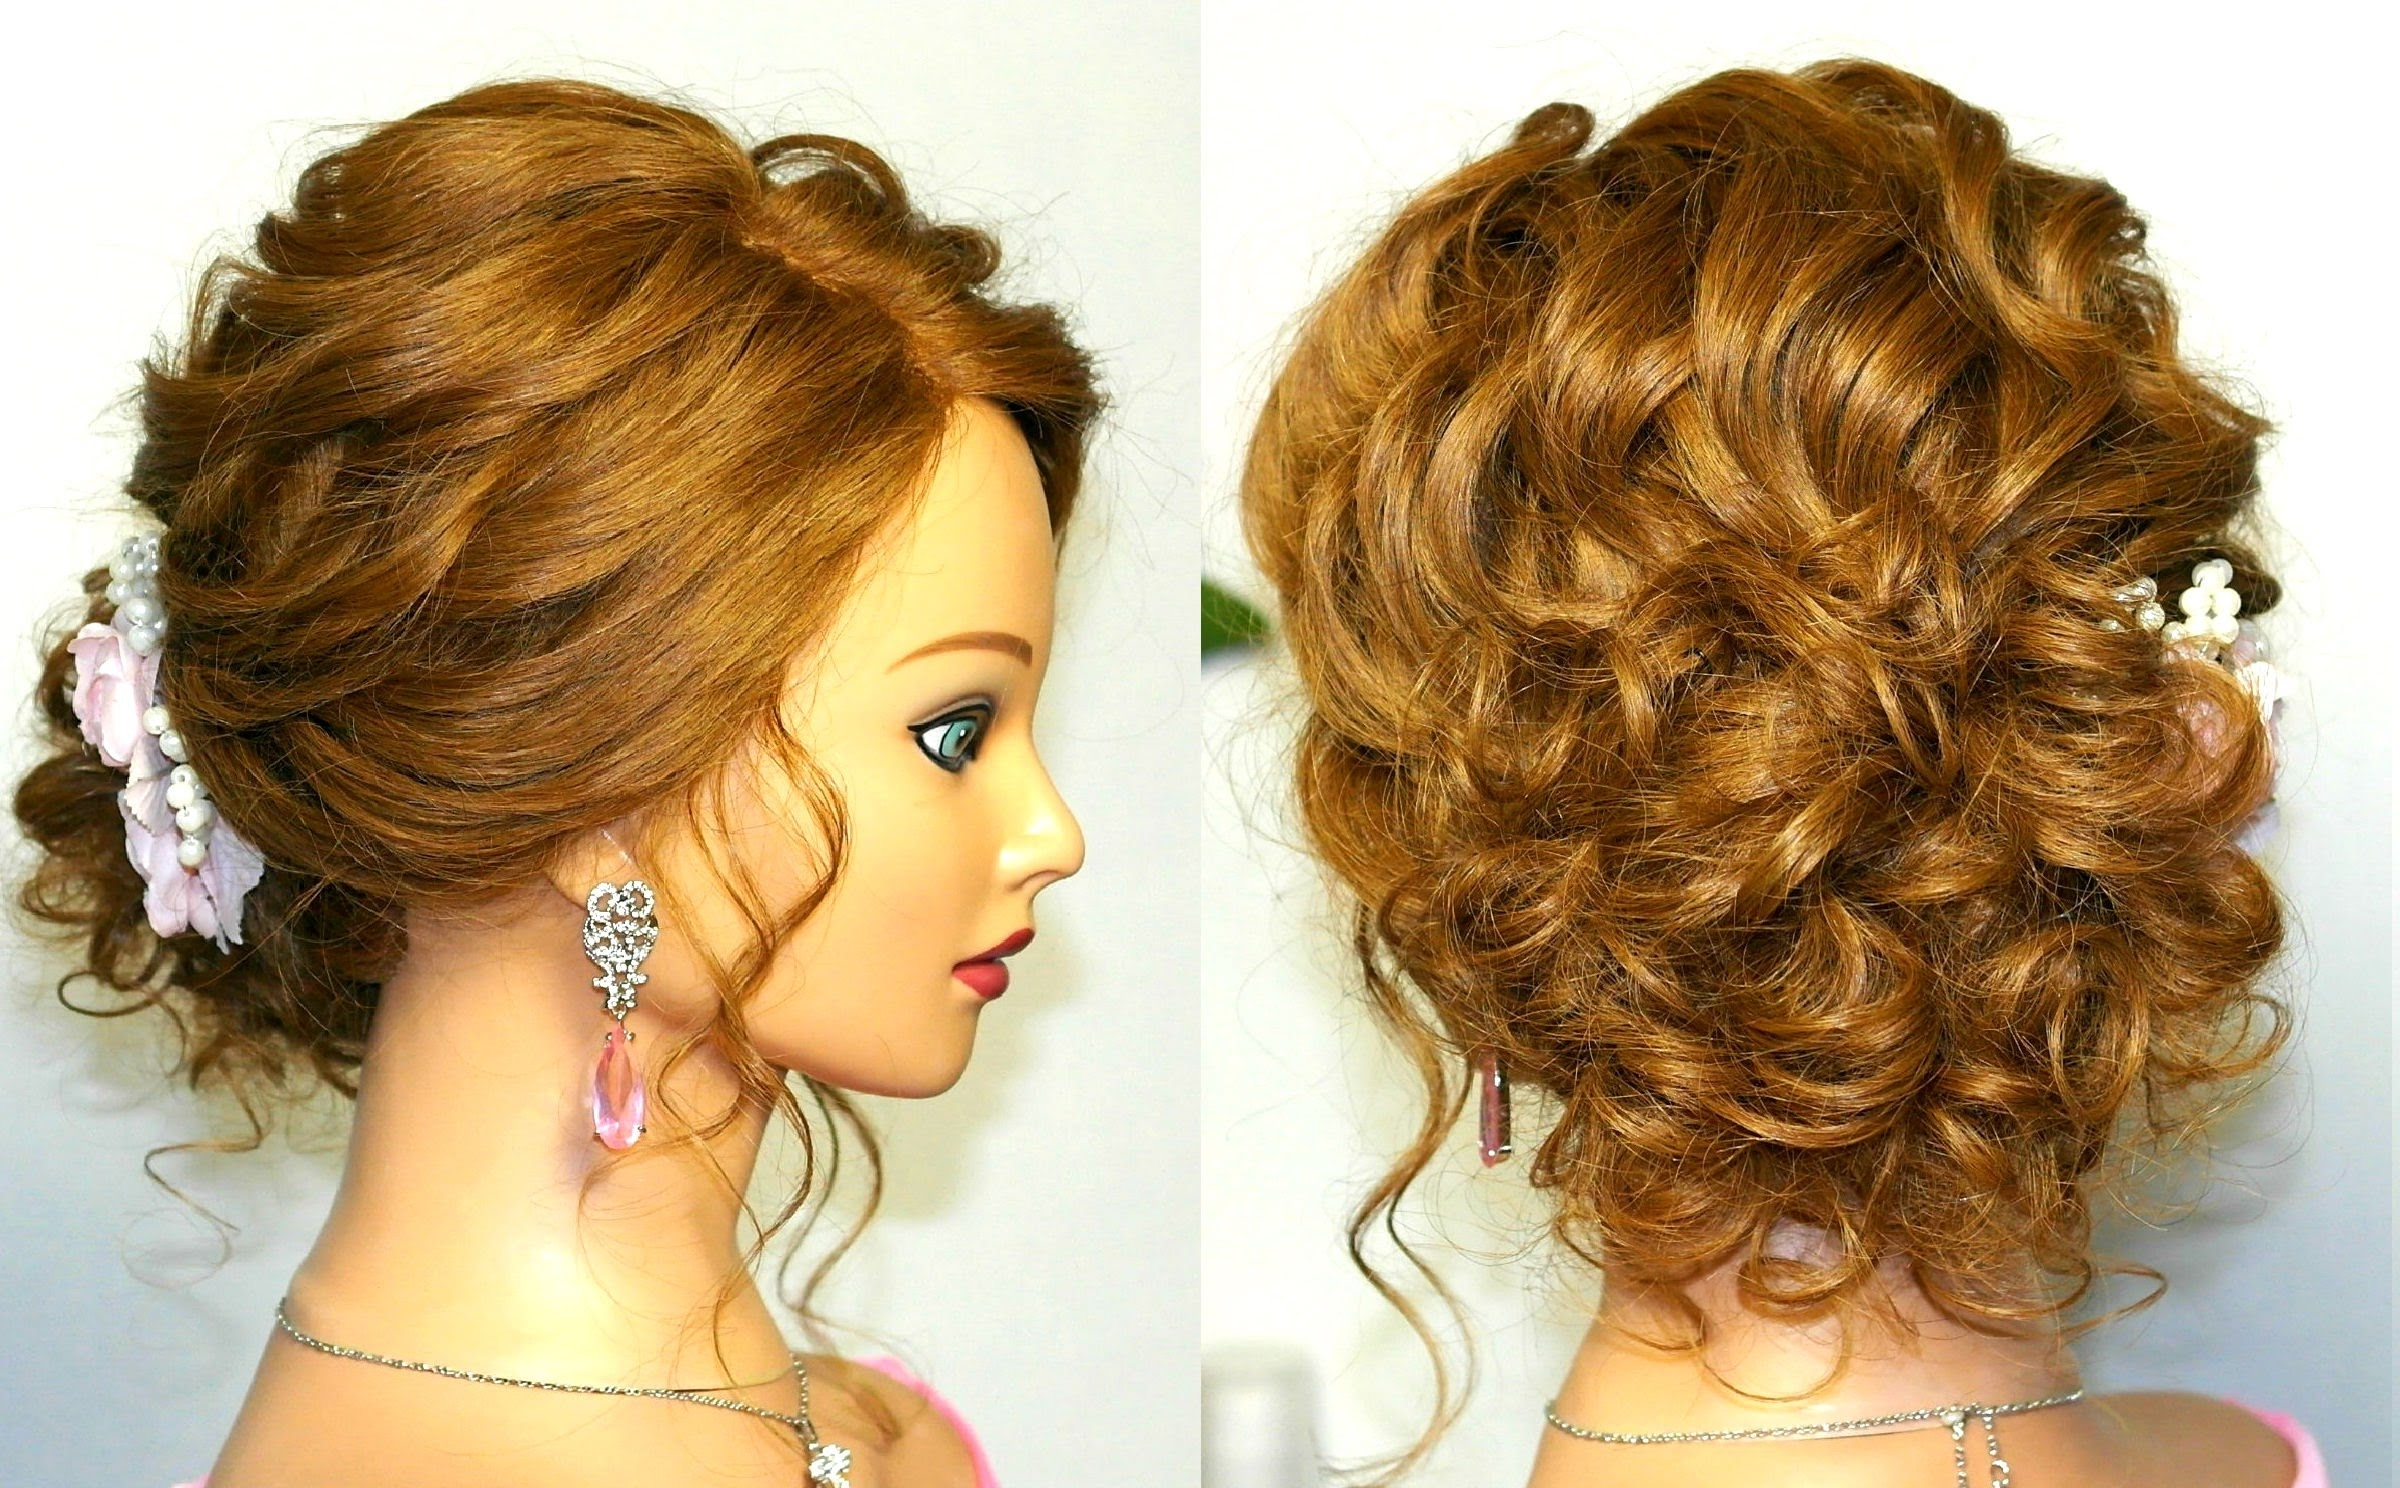 Prom Wedding Hairstyle, Curly Updo For Long Medium Hair Tutorial Inside Curly Updo Hairstyles (View 10 of 15)